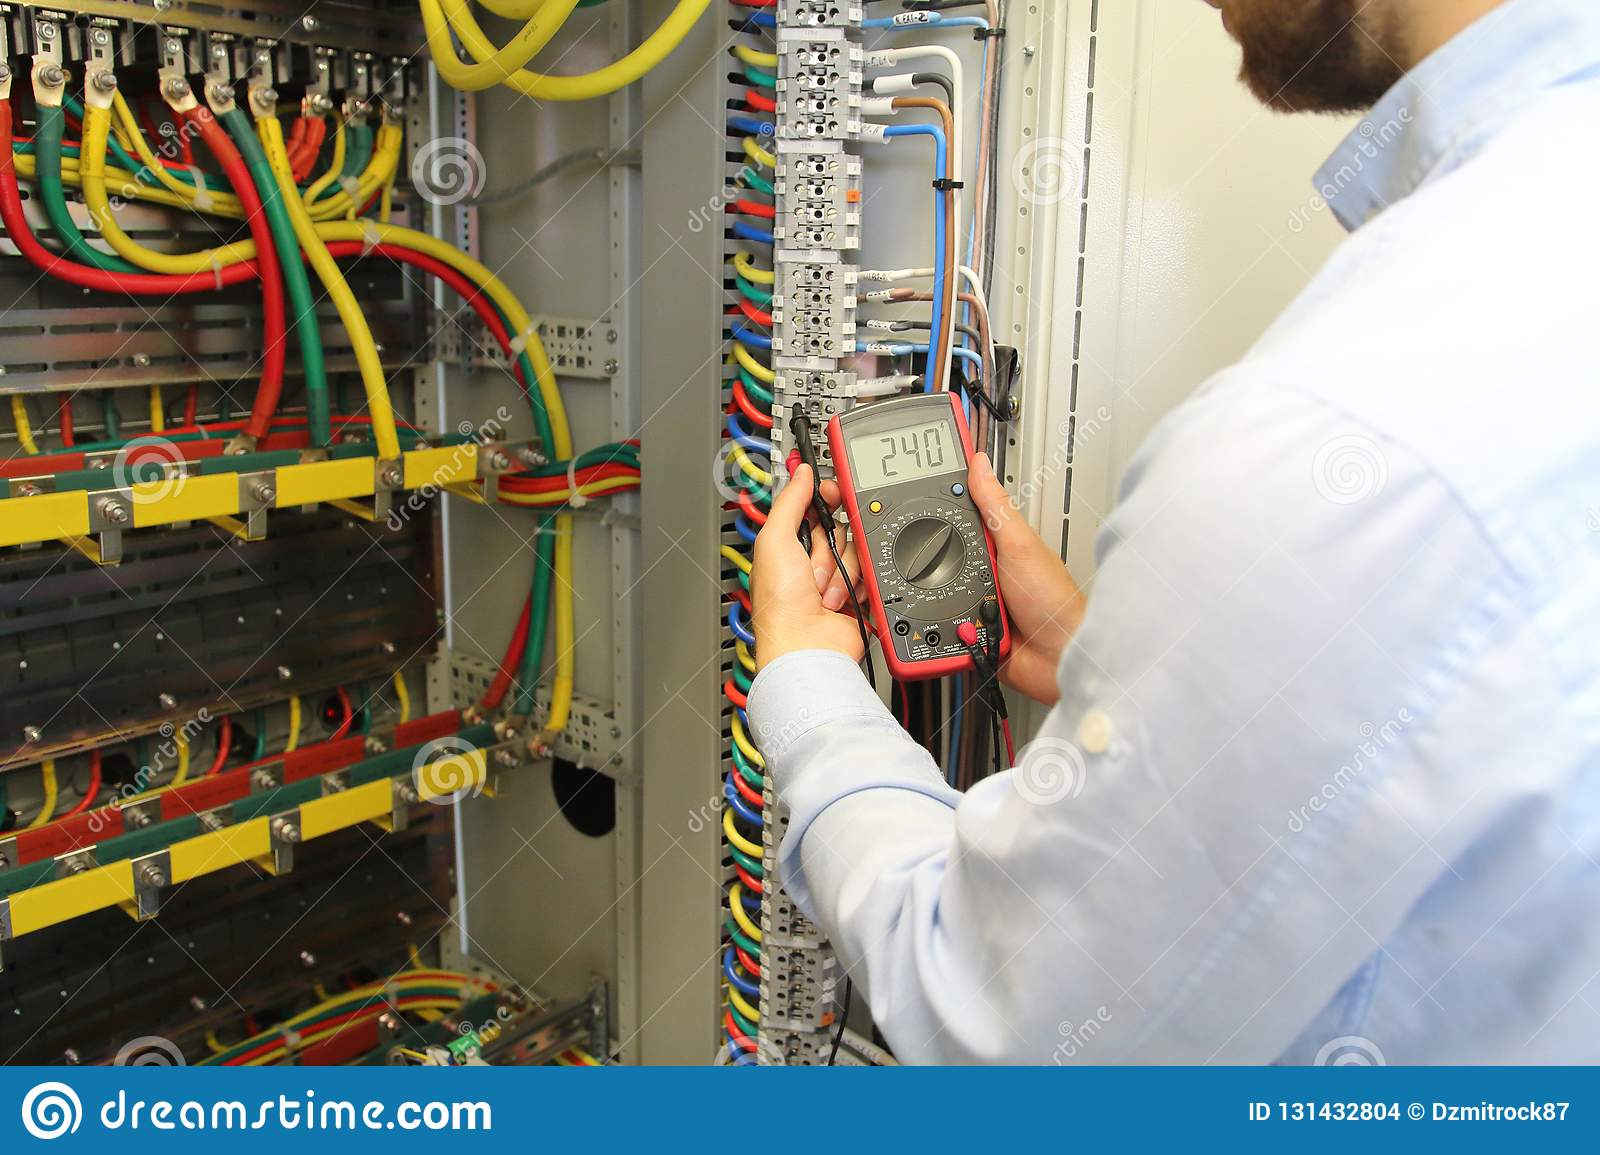 hight resolution of electrician is working in electrical cables distribution fuse box with multimeter